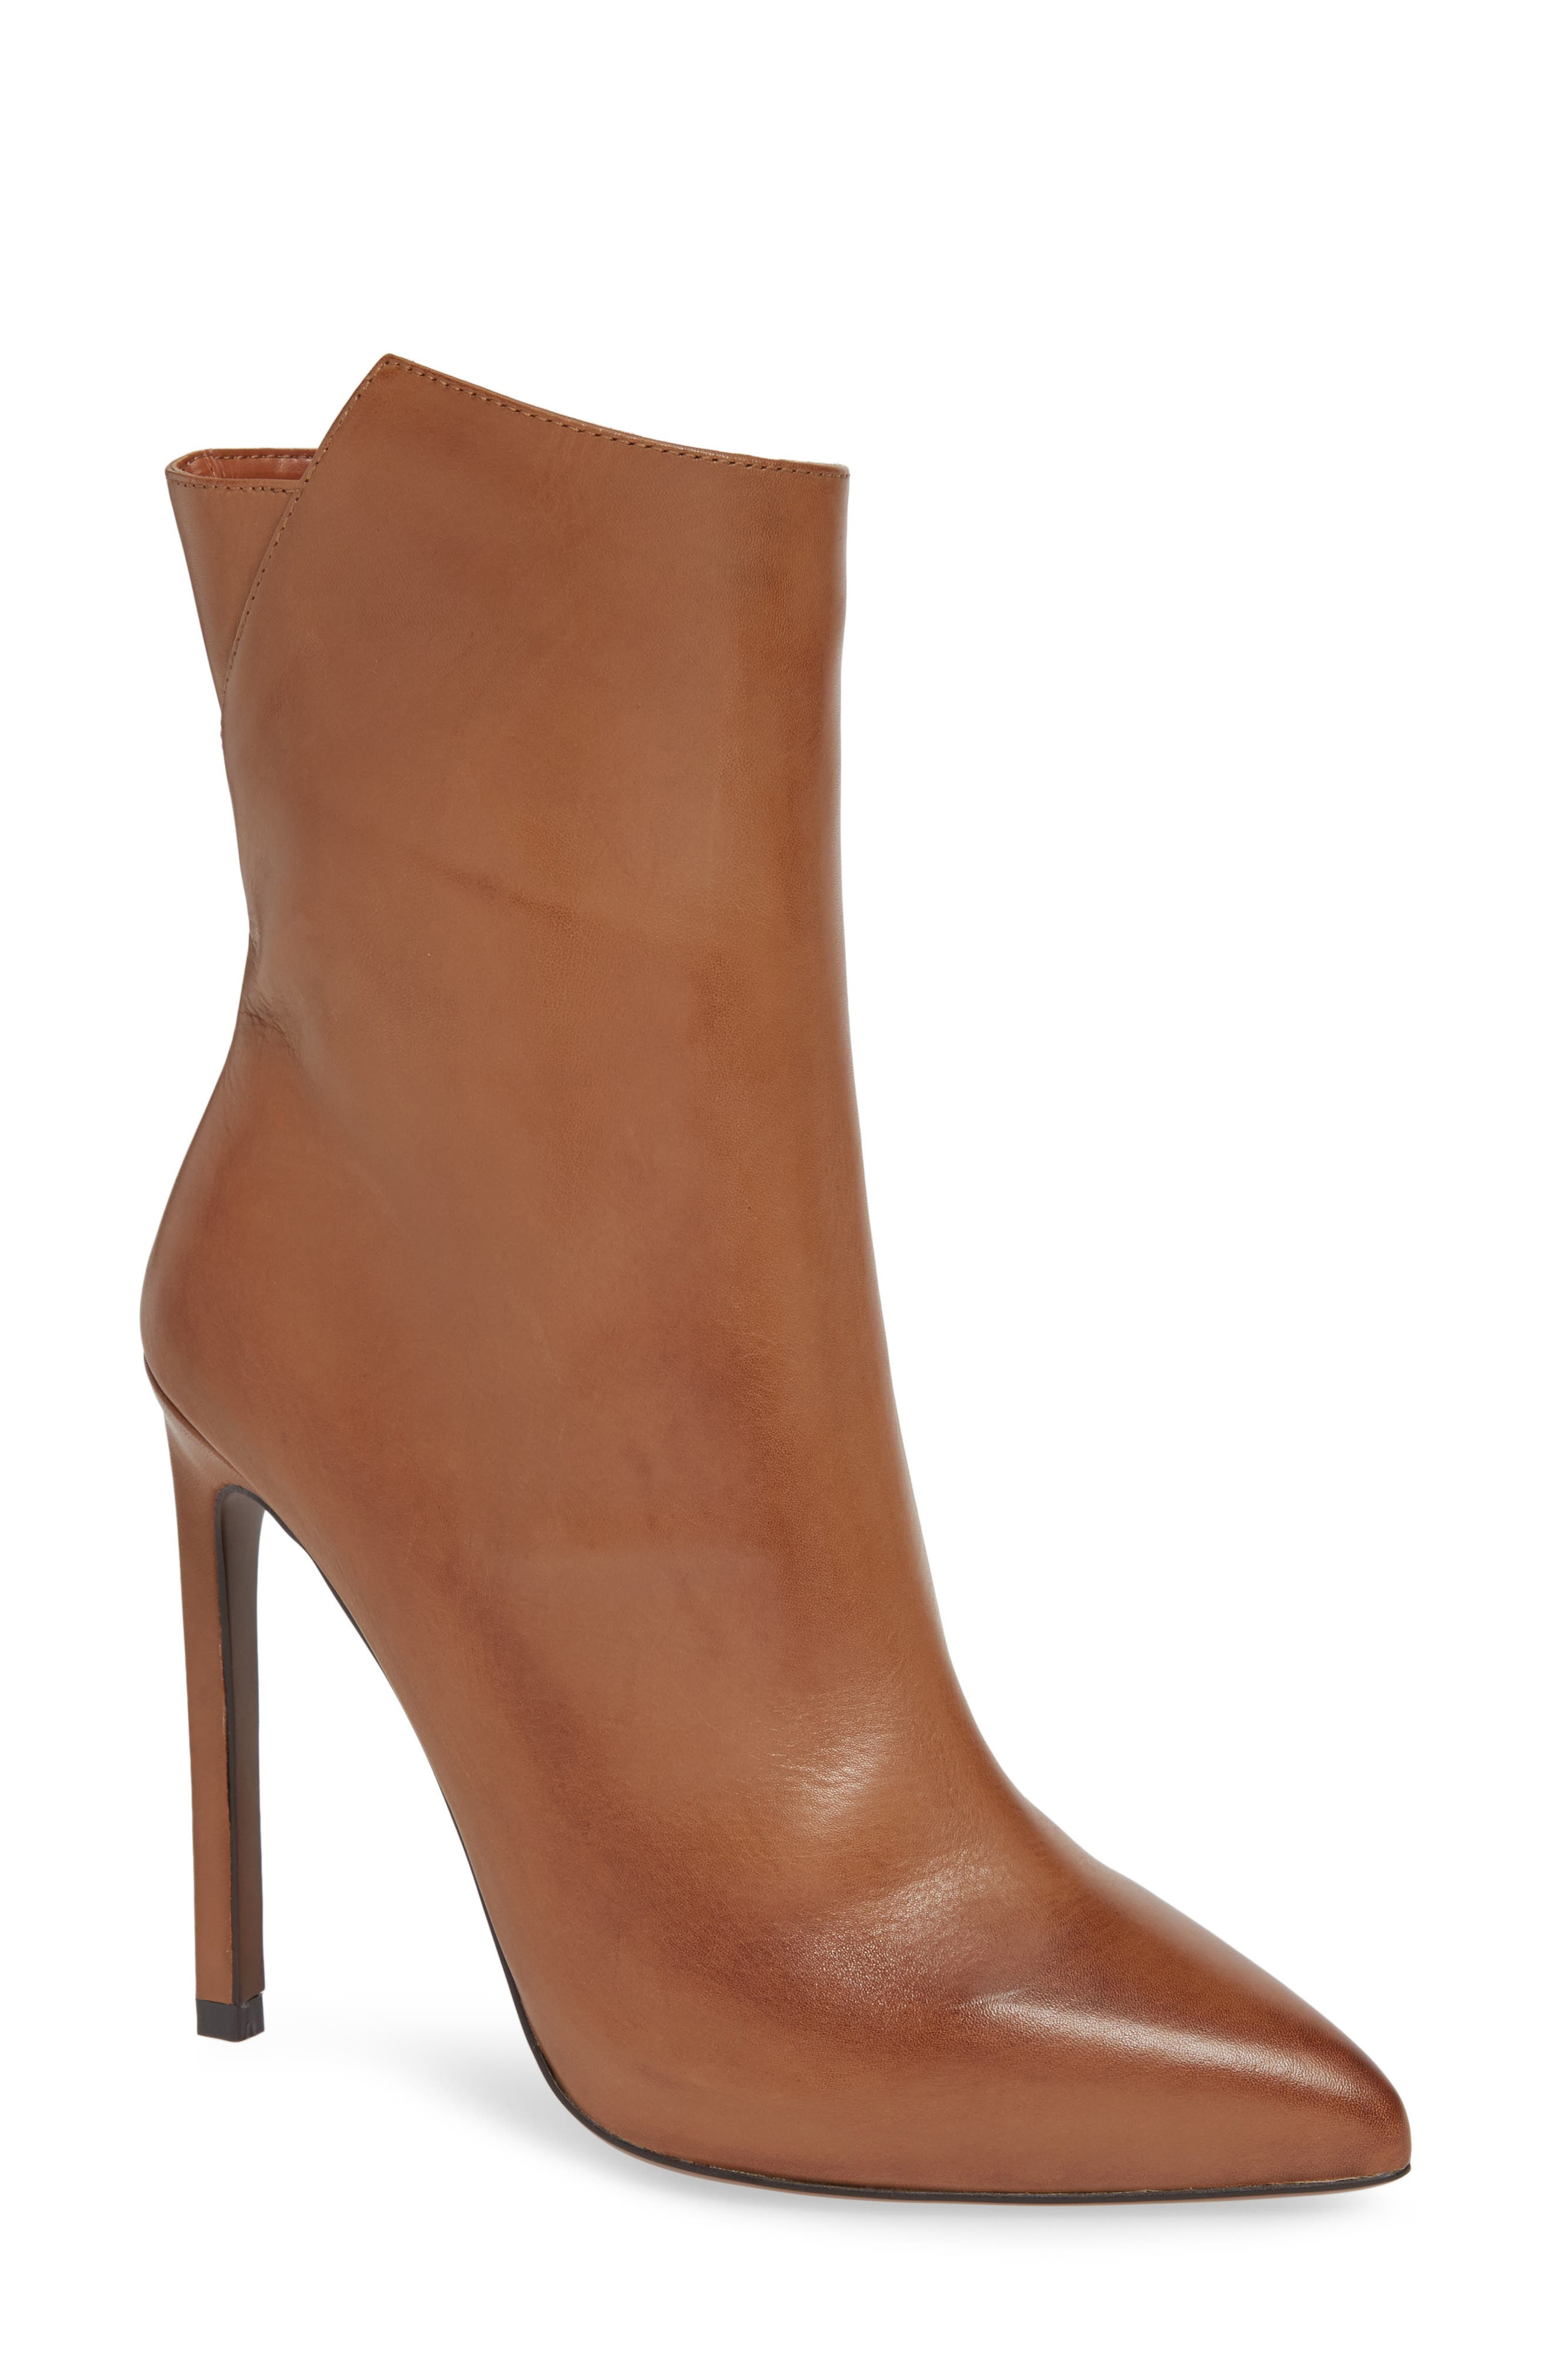 TONY BIANCO Frappe Bootie in Tan Albany Leather